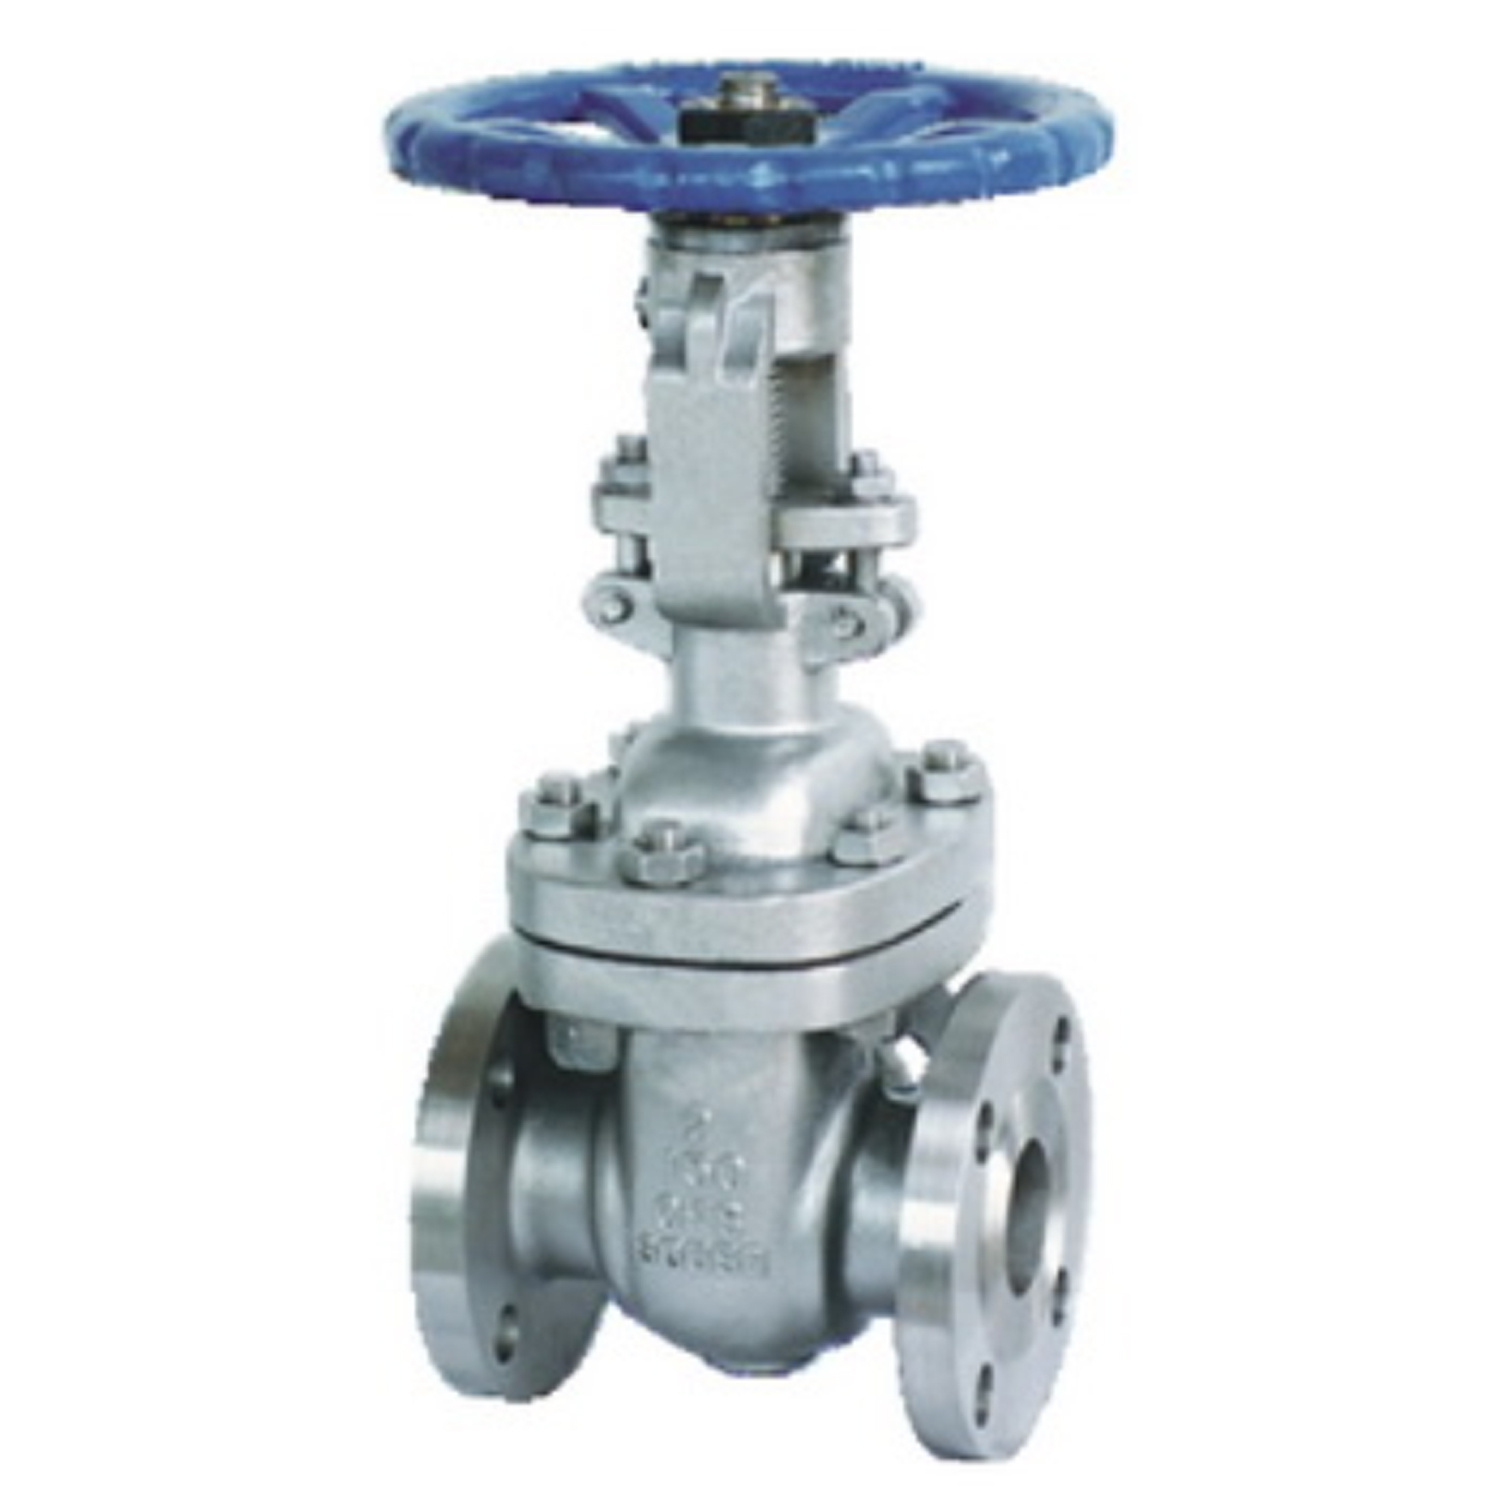 Stainless Steel Ansi Flange Gate Valve China Valve